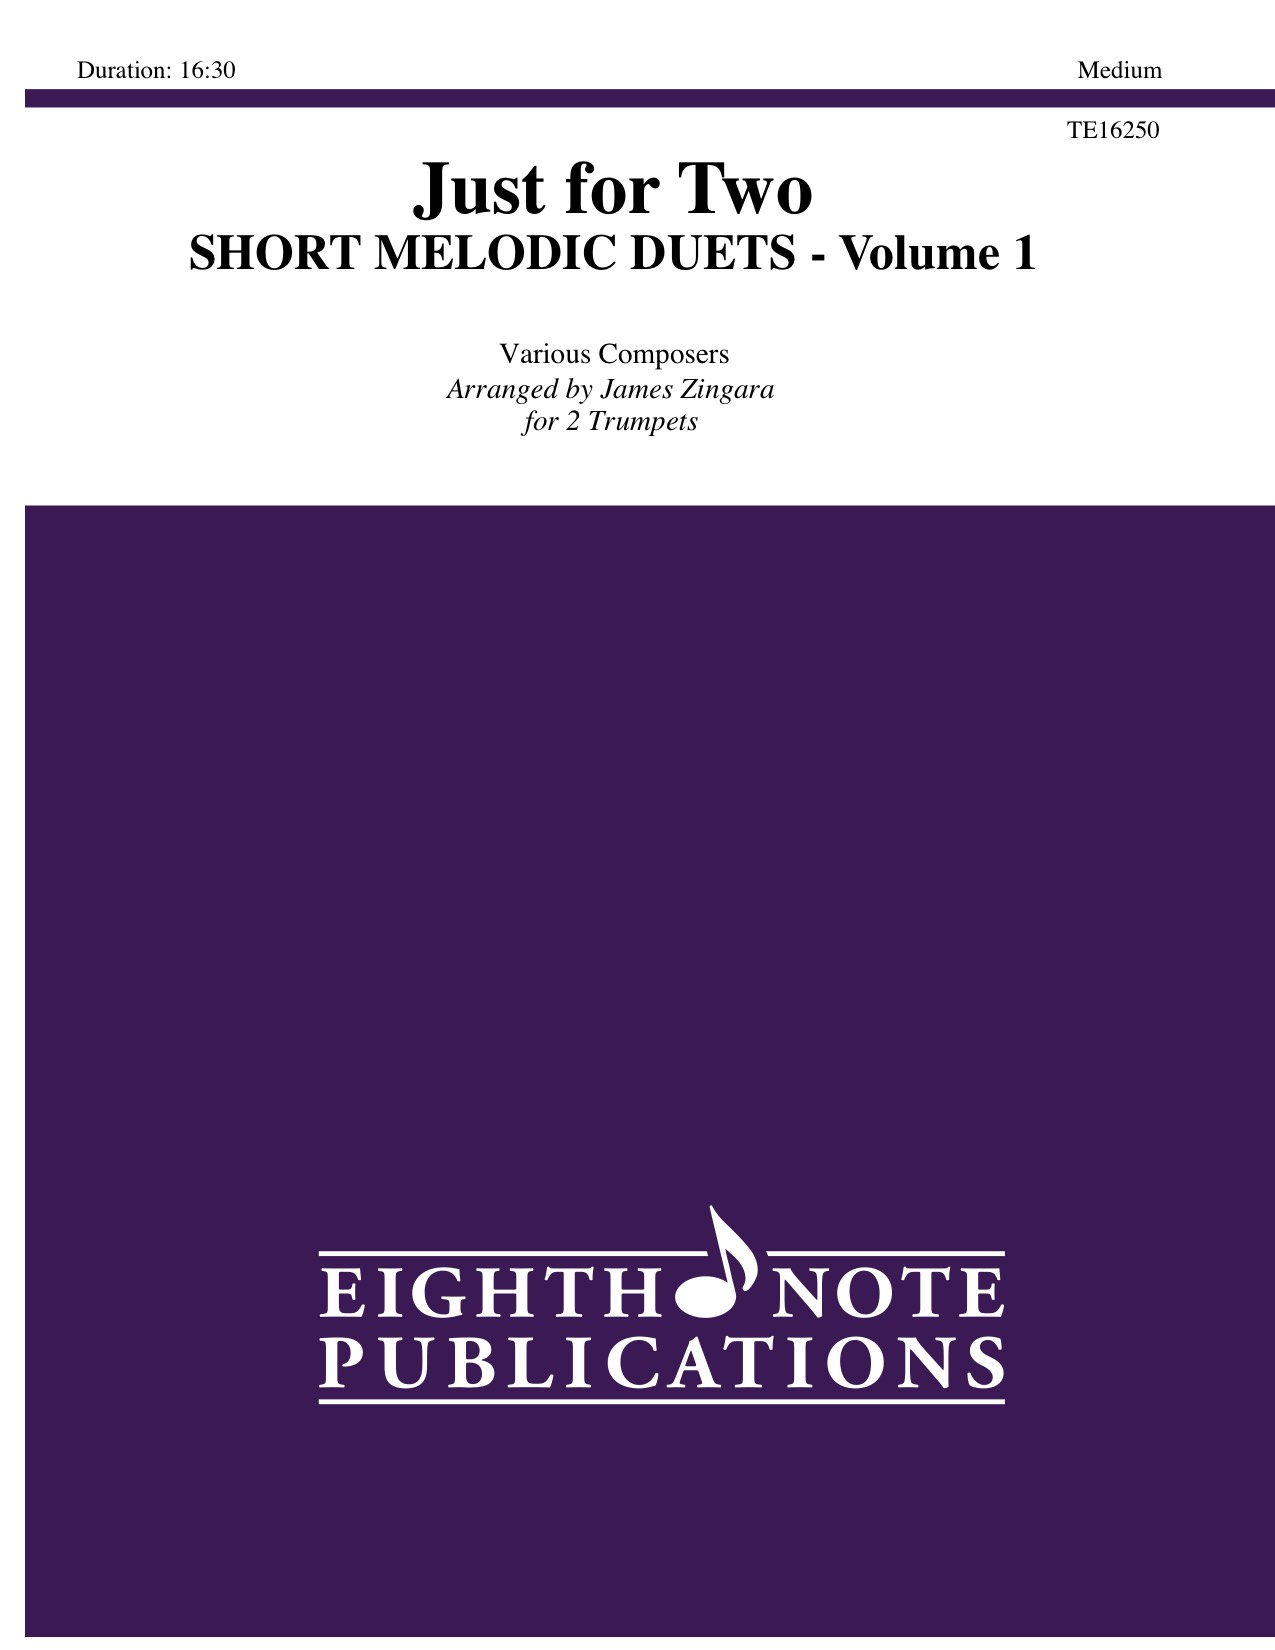 Just for 2 - Short Melodic Duets - Volume 1 - Various Composers